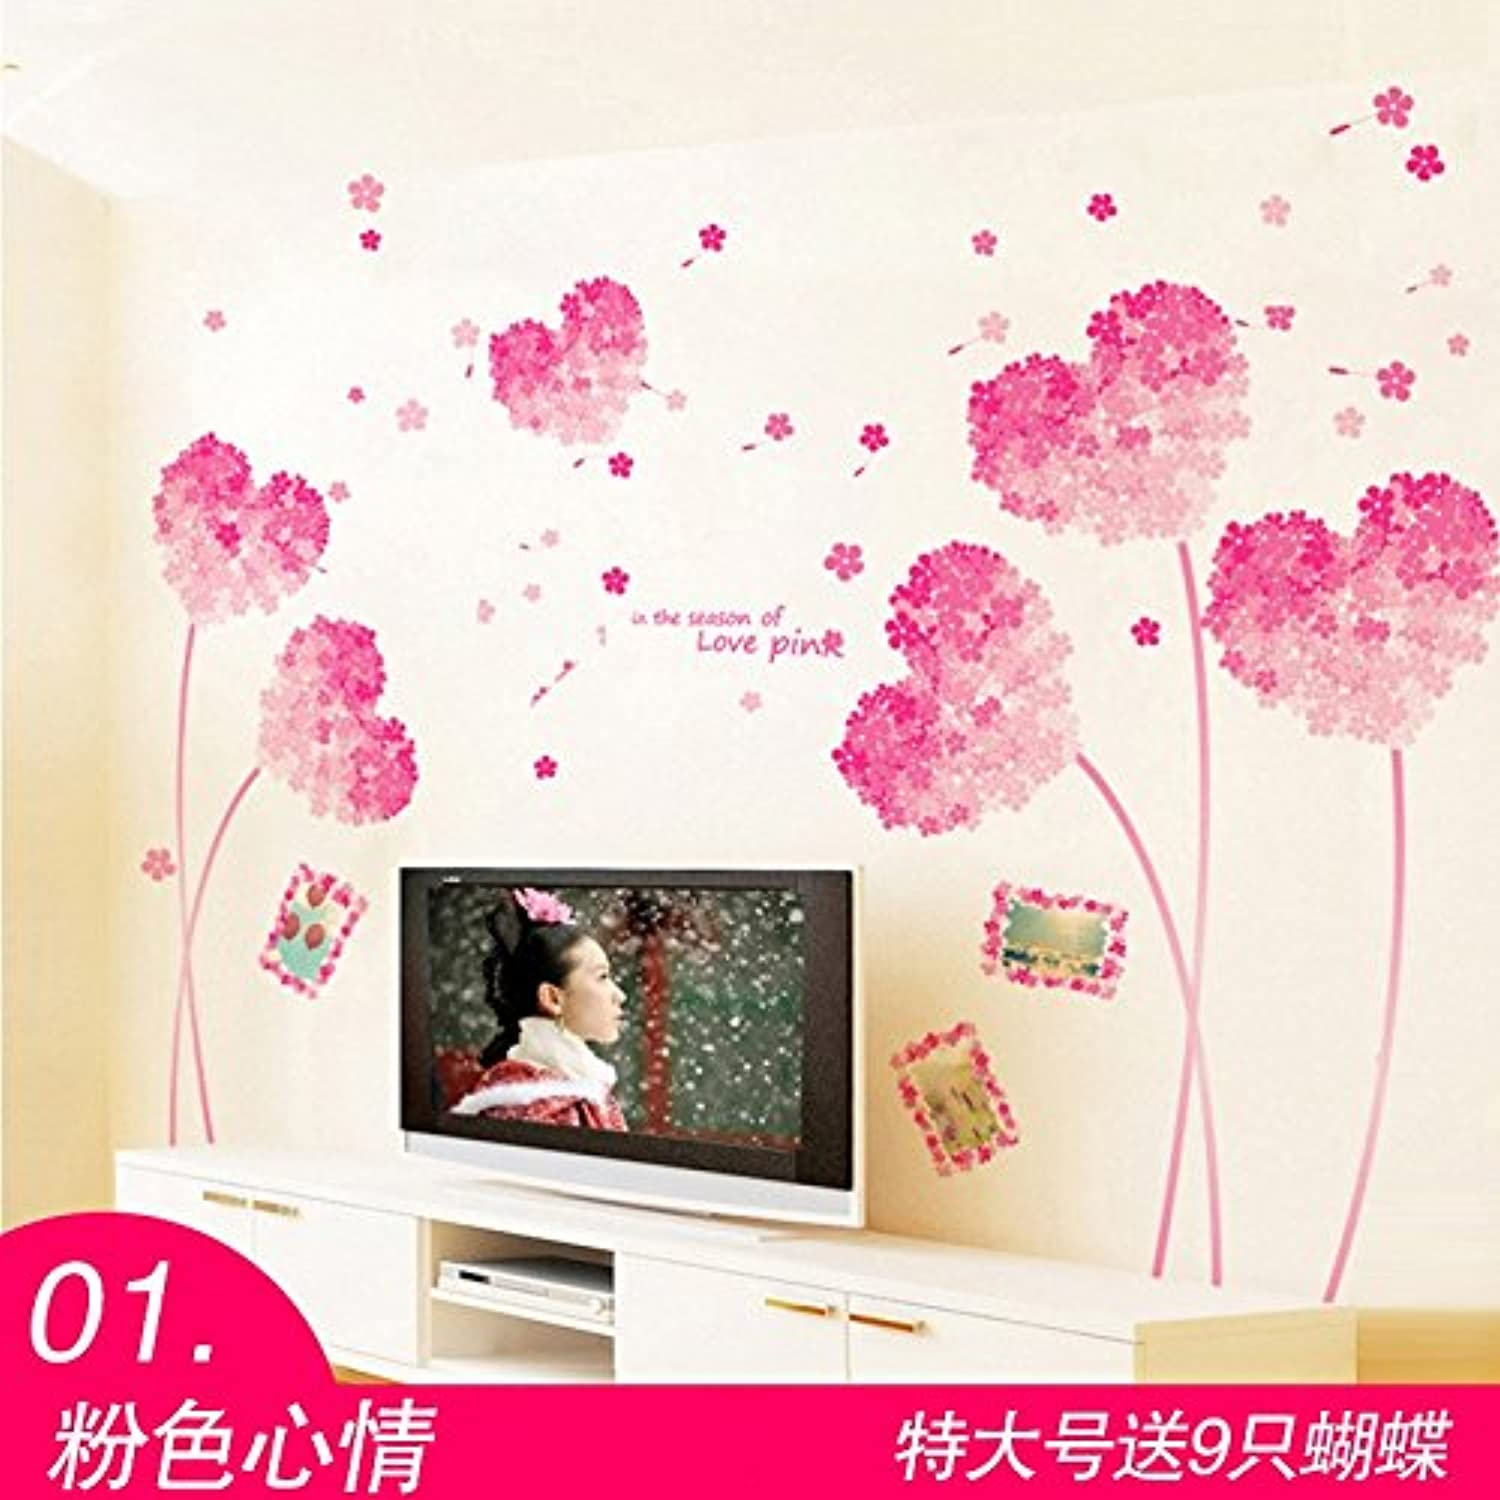 Znzbzt Wall Paper SelfAdhesive 3D Wall Decoration Sticker Wall Posters, Pink Heart.